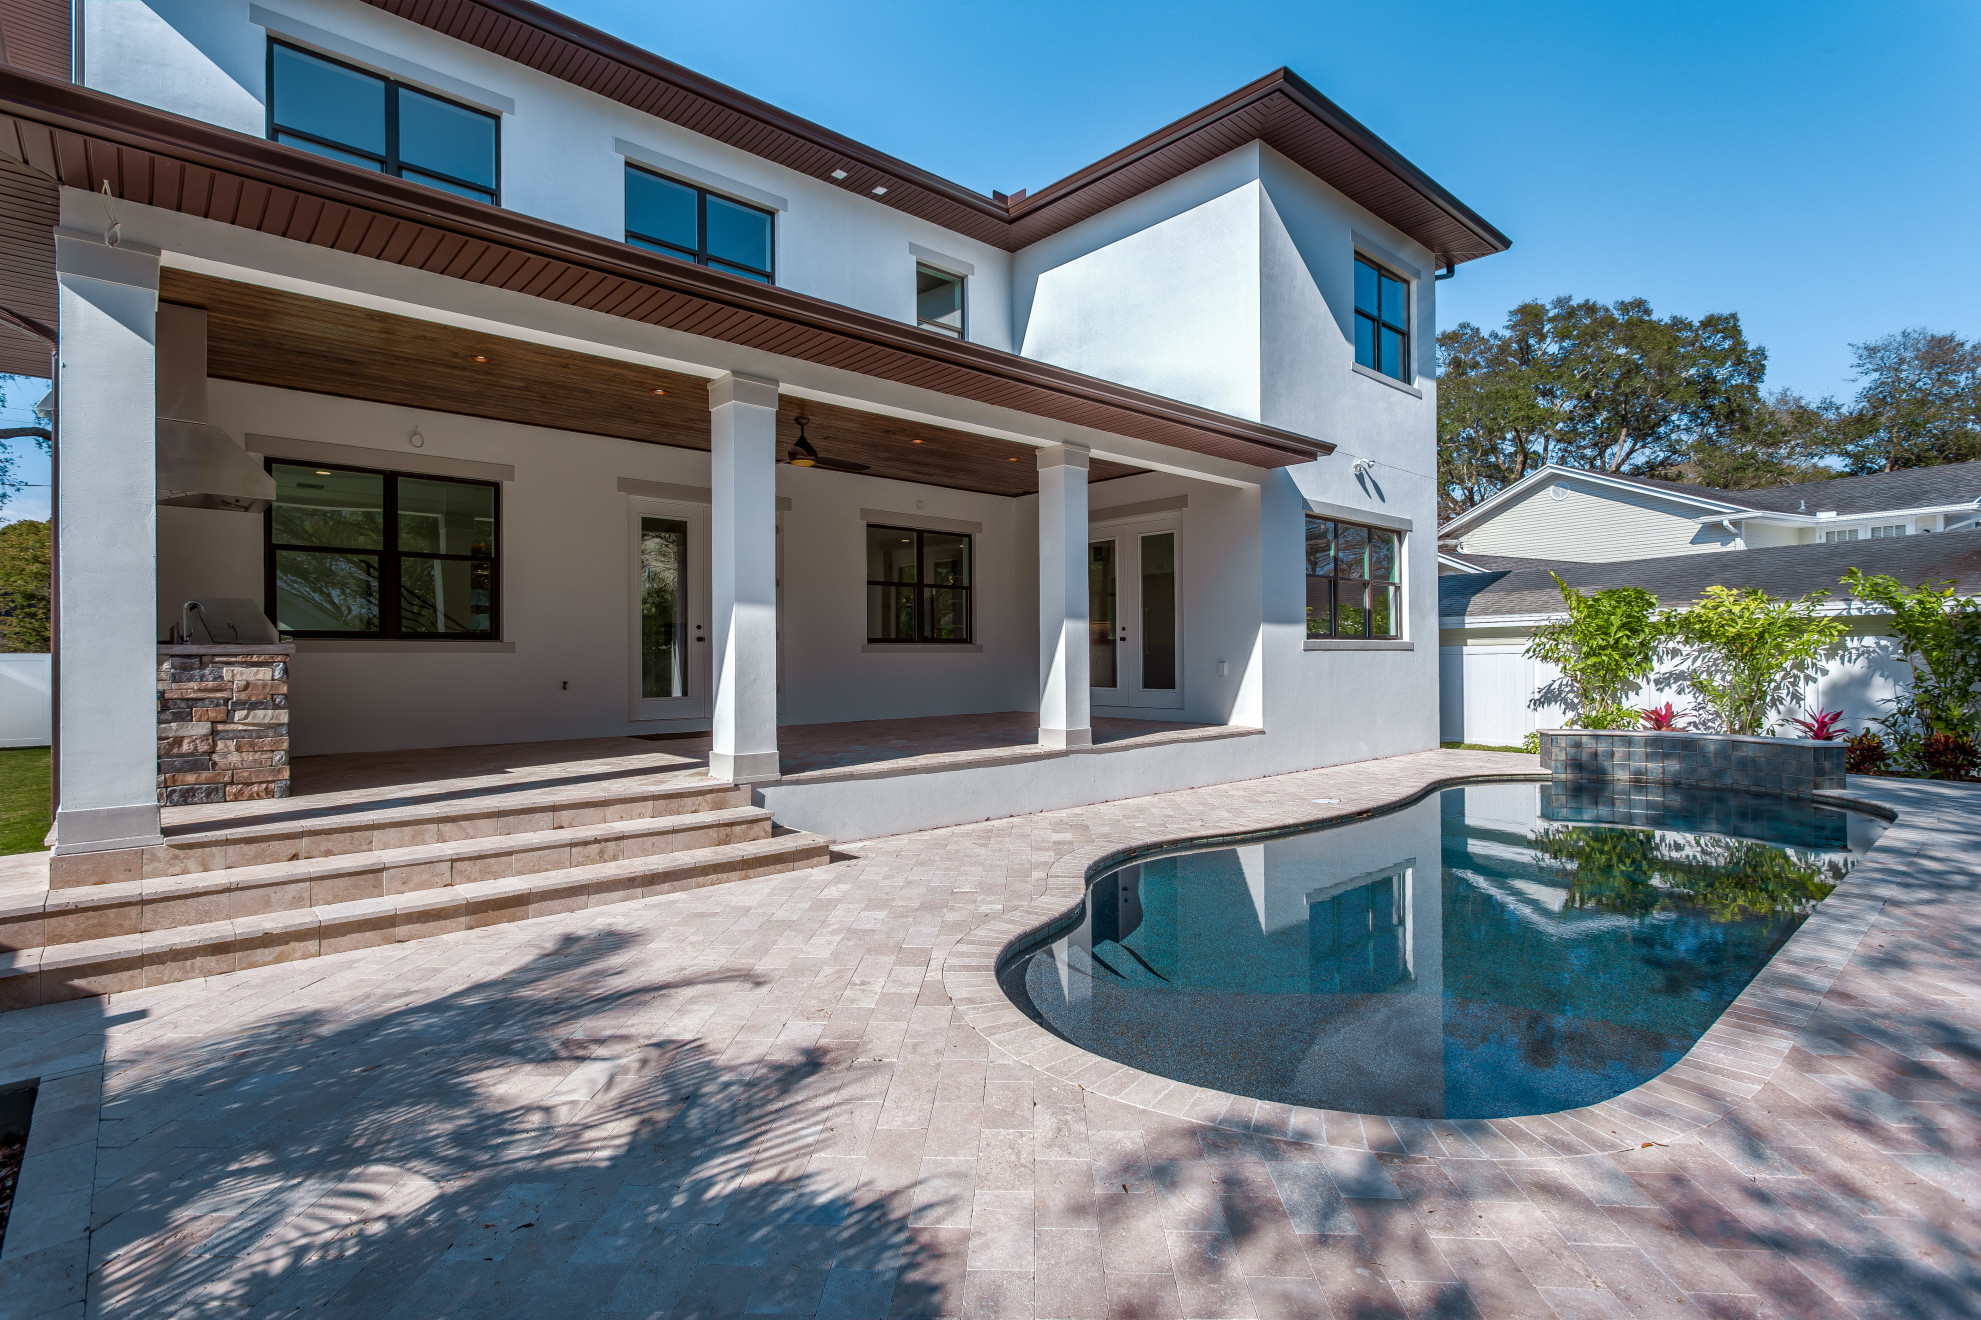 Pool - Sunset Park Custom Home